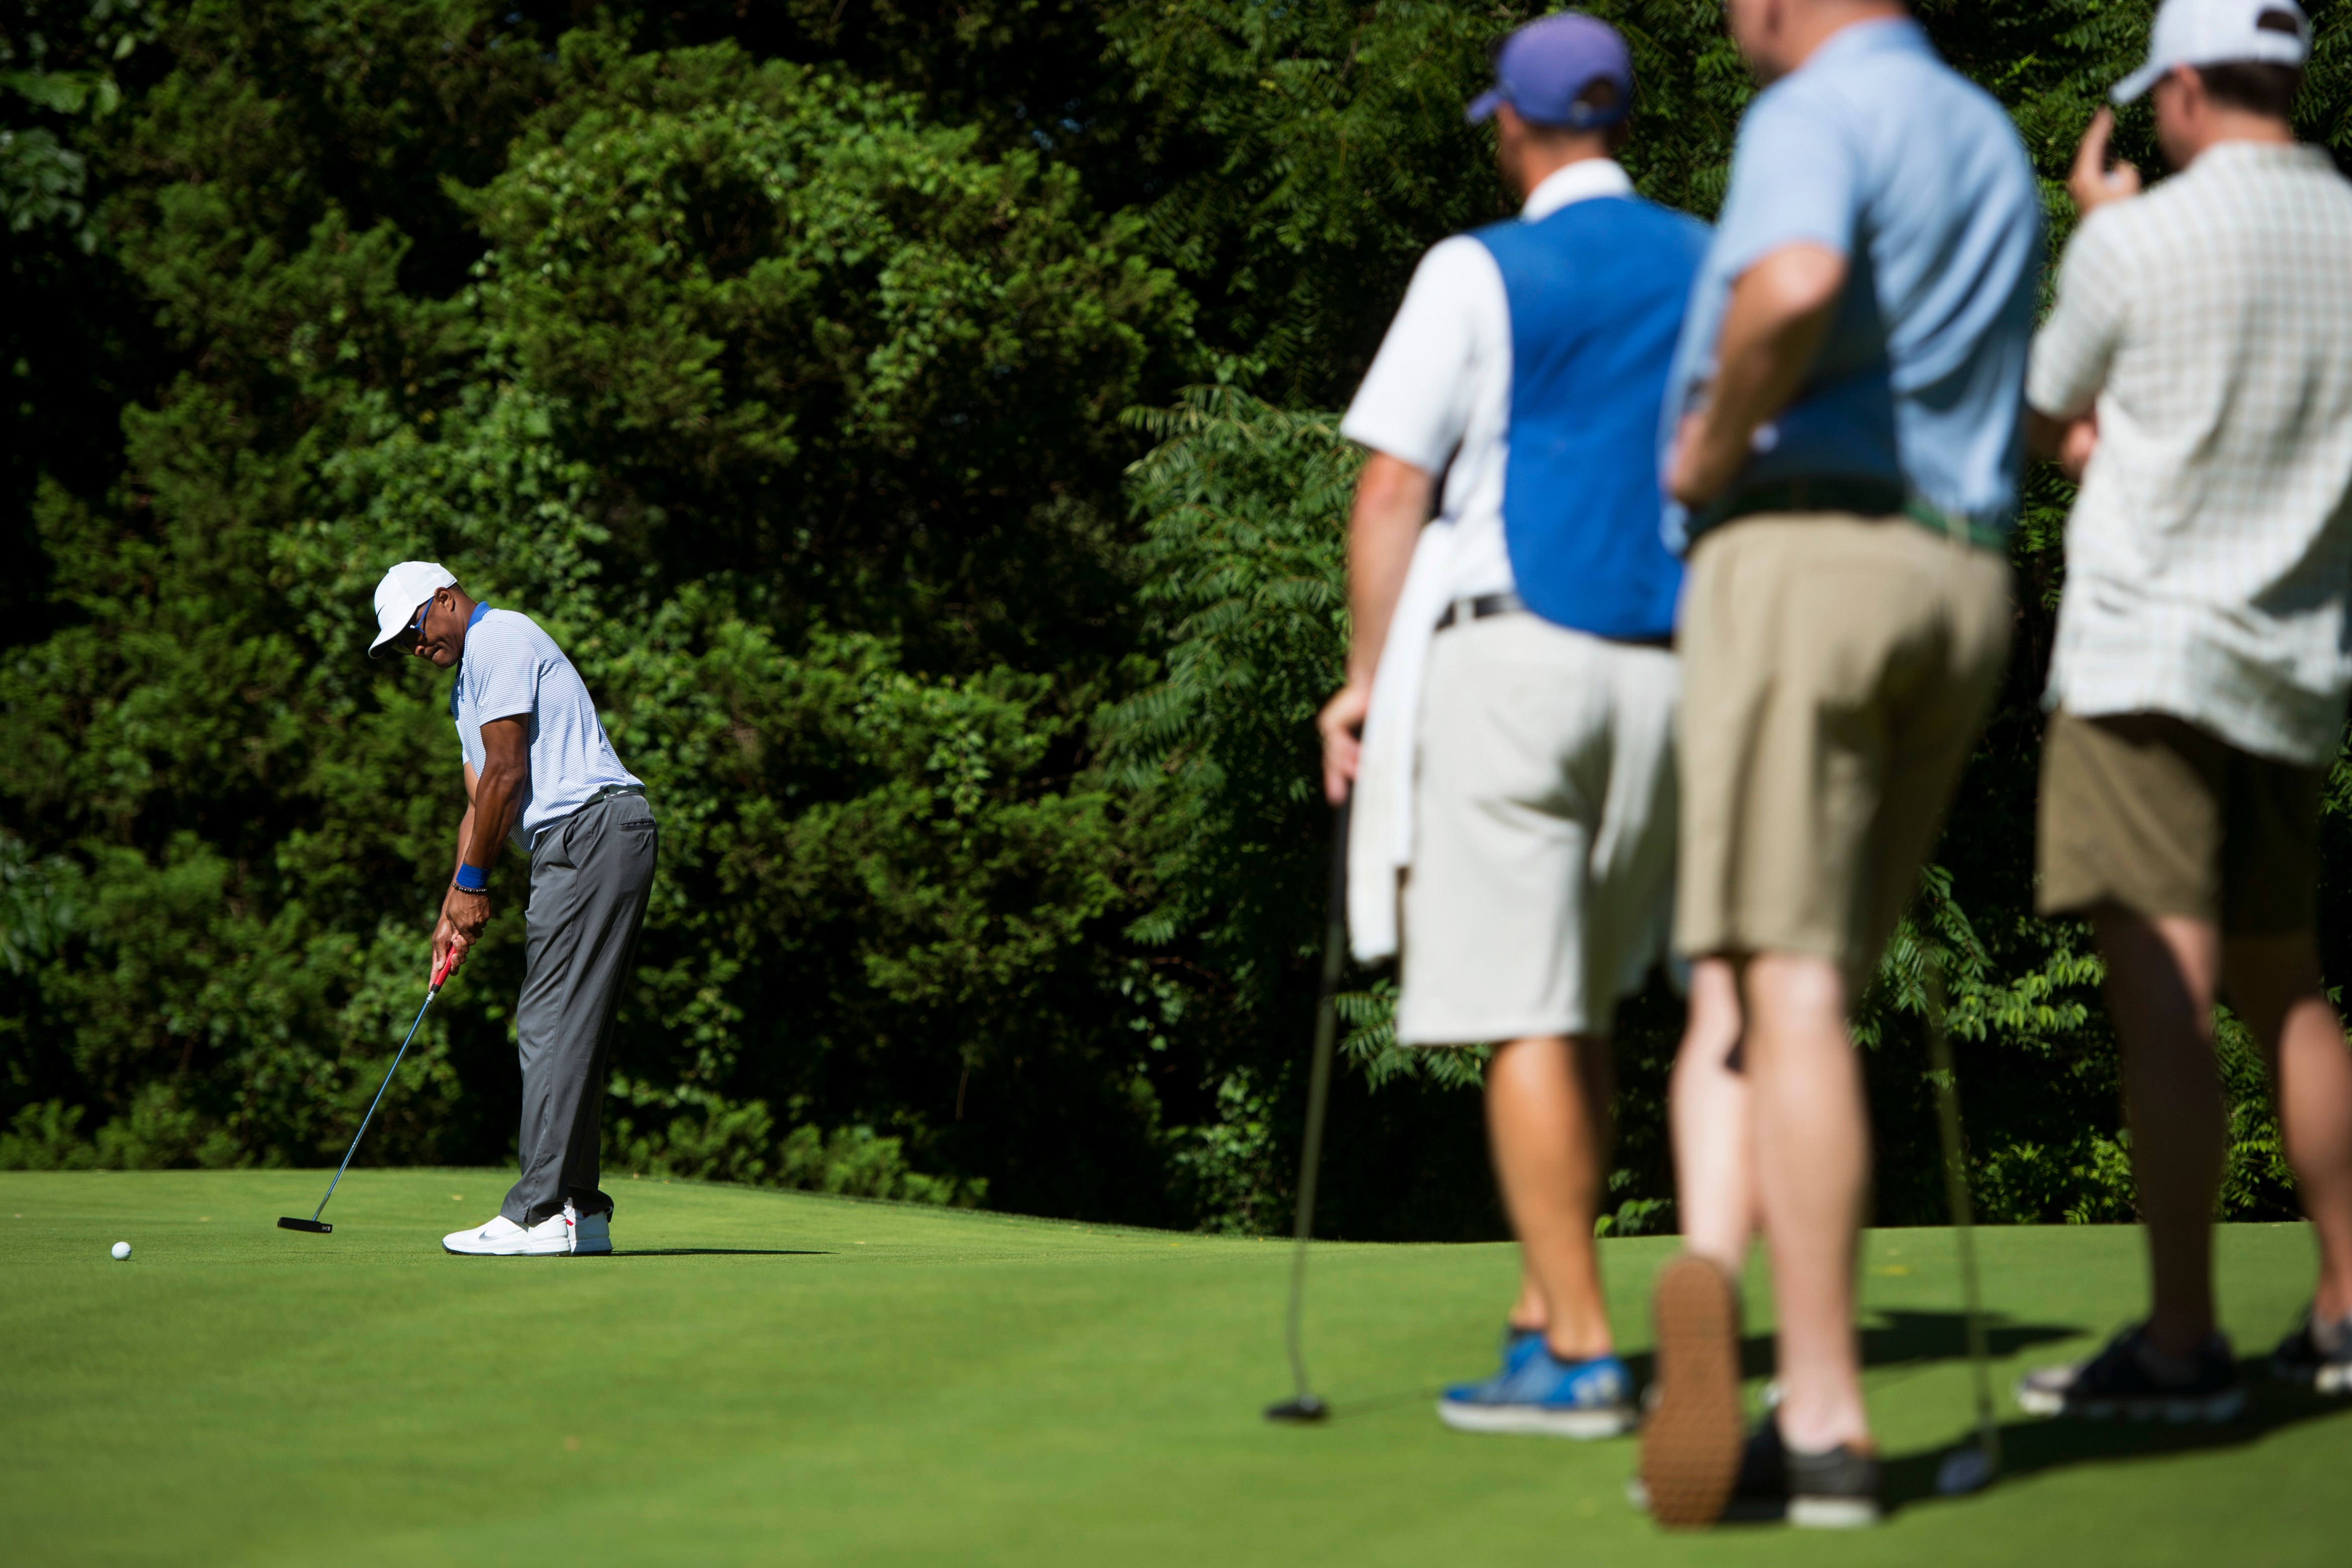 UNITED STATES - June 25: Rep. Cedric Richmond D-La., puts the ball as Reps. Tom Rooney, R-Fla., and Duncan D. Hunter R-Cali., watch nearby during the First Tee's Congressional Challenge annual golf tournament at the Columbia Country Club golf course Monday June 25, 2018 (Photo By Sarah Silbiger/CQ Roll Call)